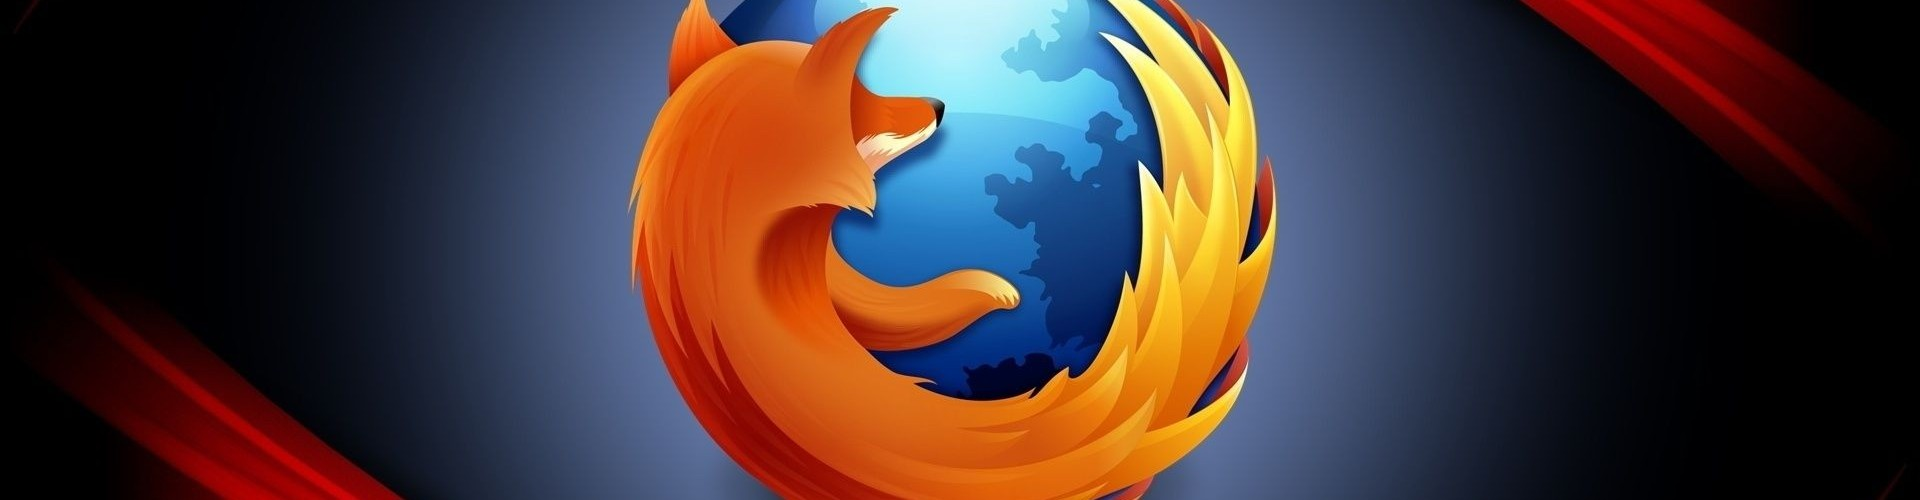 Slider - How to install Firefox in Kali Linux - blackMORE Ops